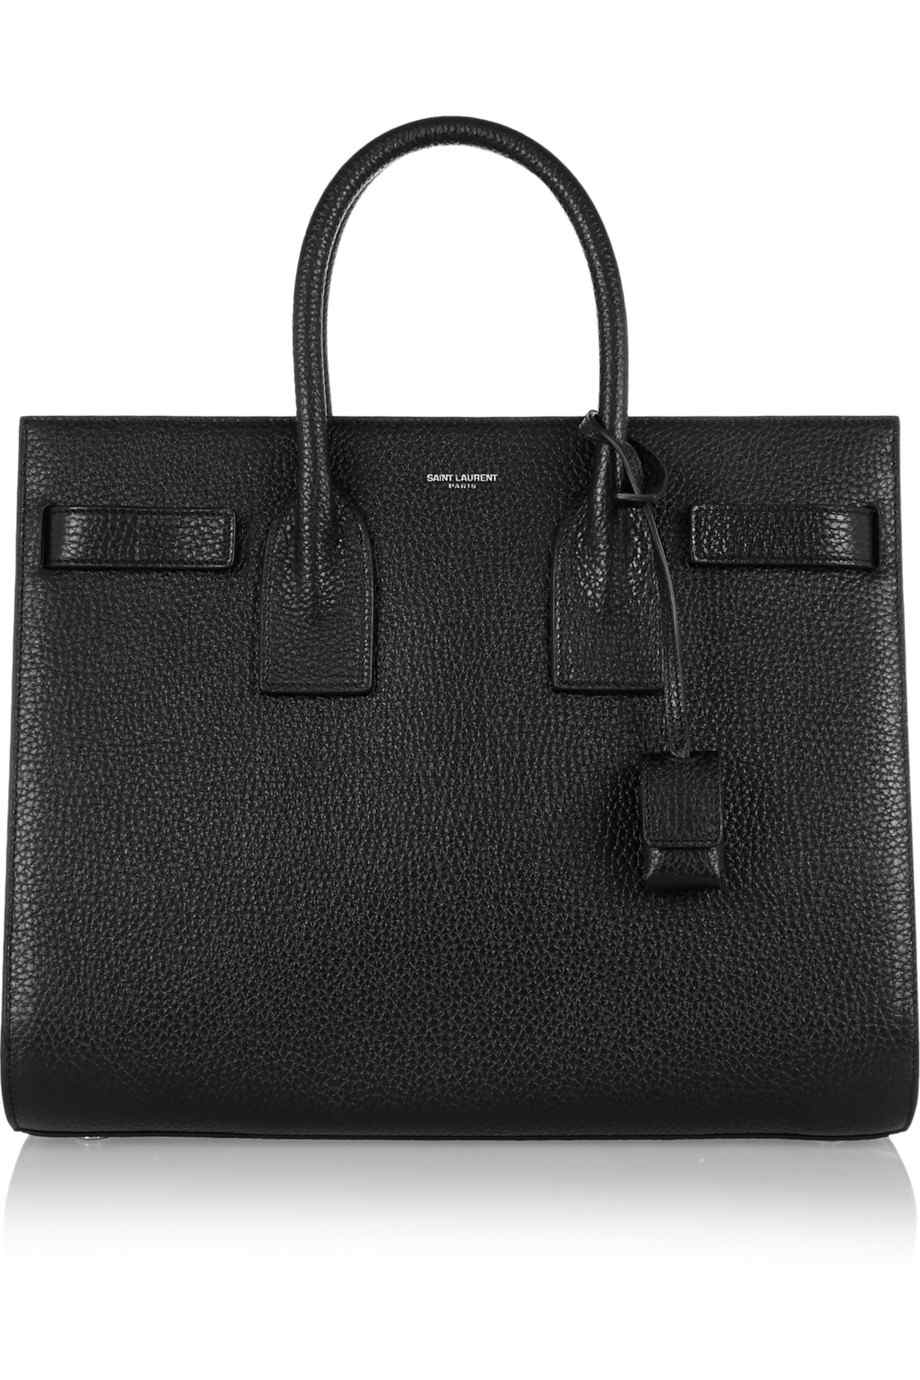 Saint Laurent - Sac (1990 €)